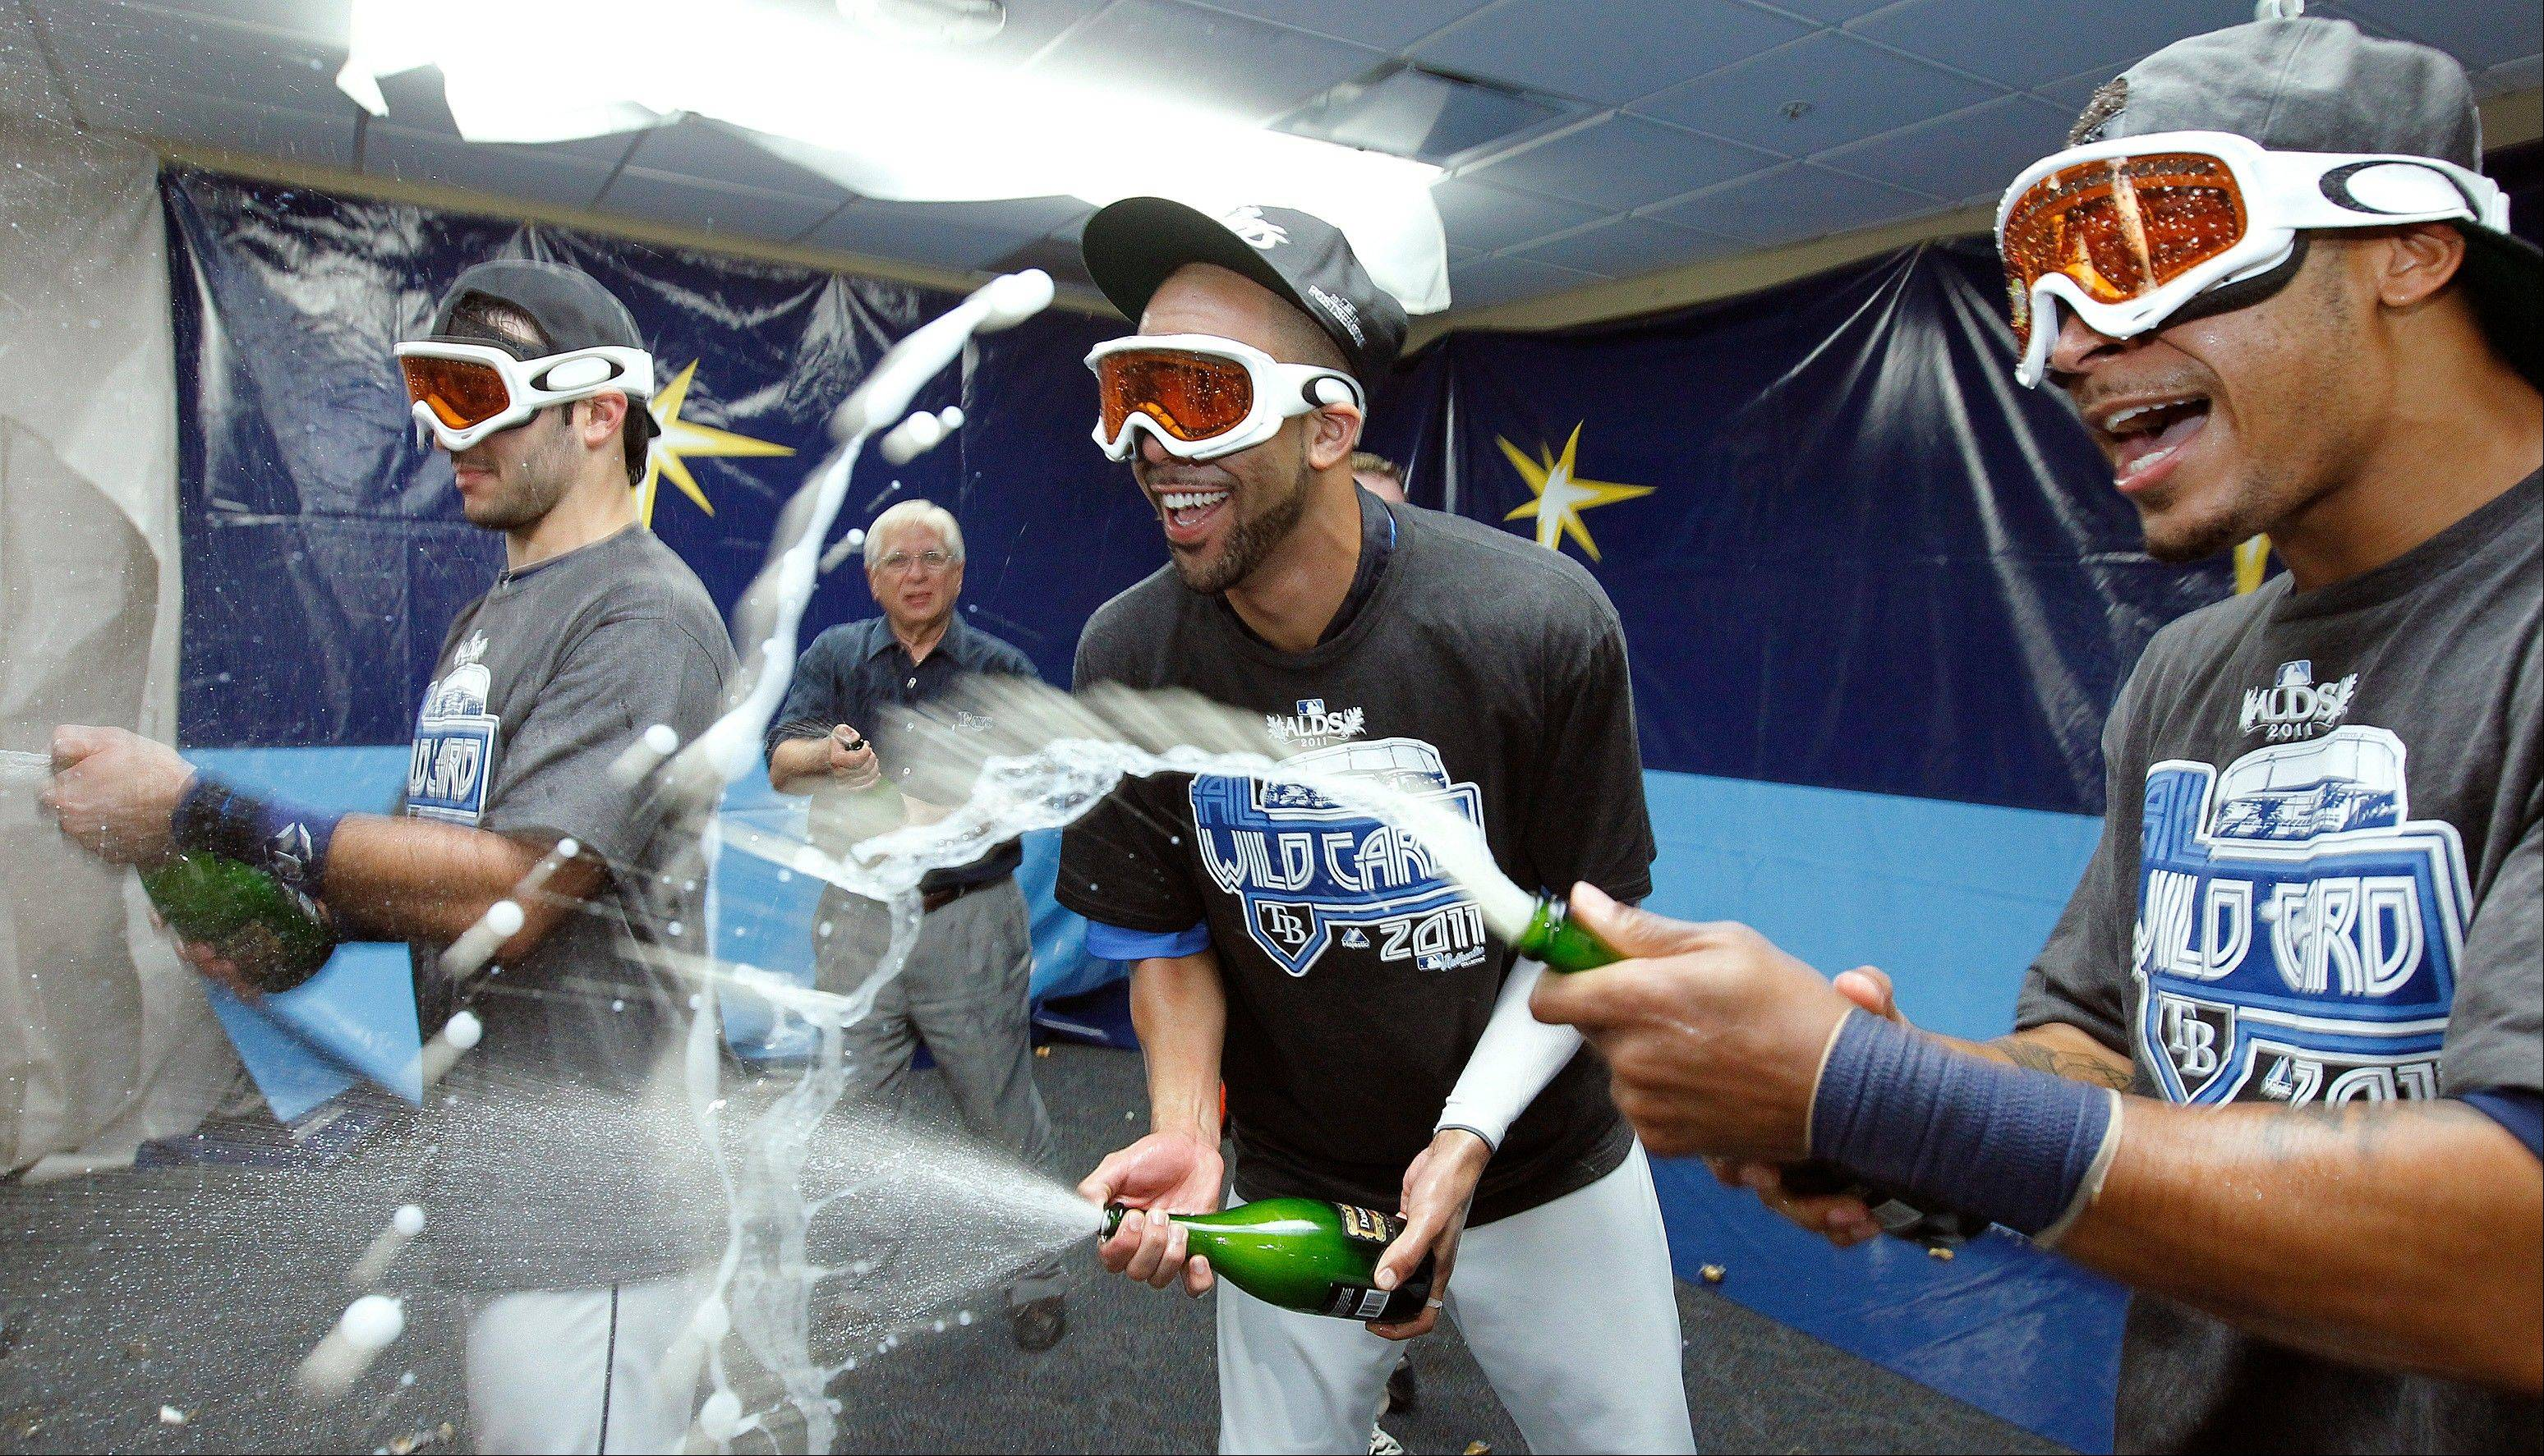 Tampa Bay Rays, from left, Sean Rodriguez, David Price, and Desmond Jennings spray champagne as they celebrate early Thursday after the Rays clinched the AL wild card with an 8-7 win over the New York Yankees.